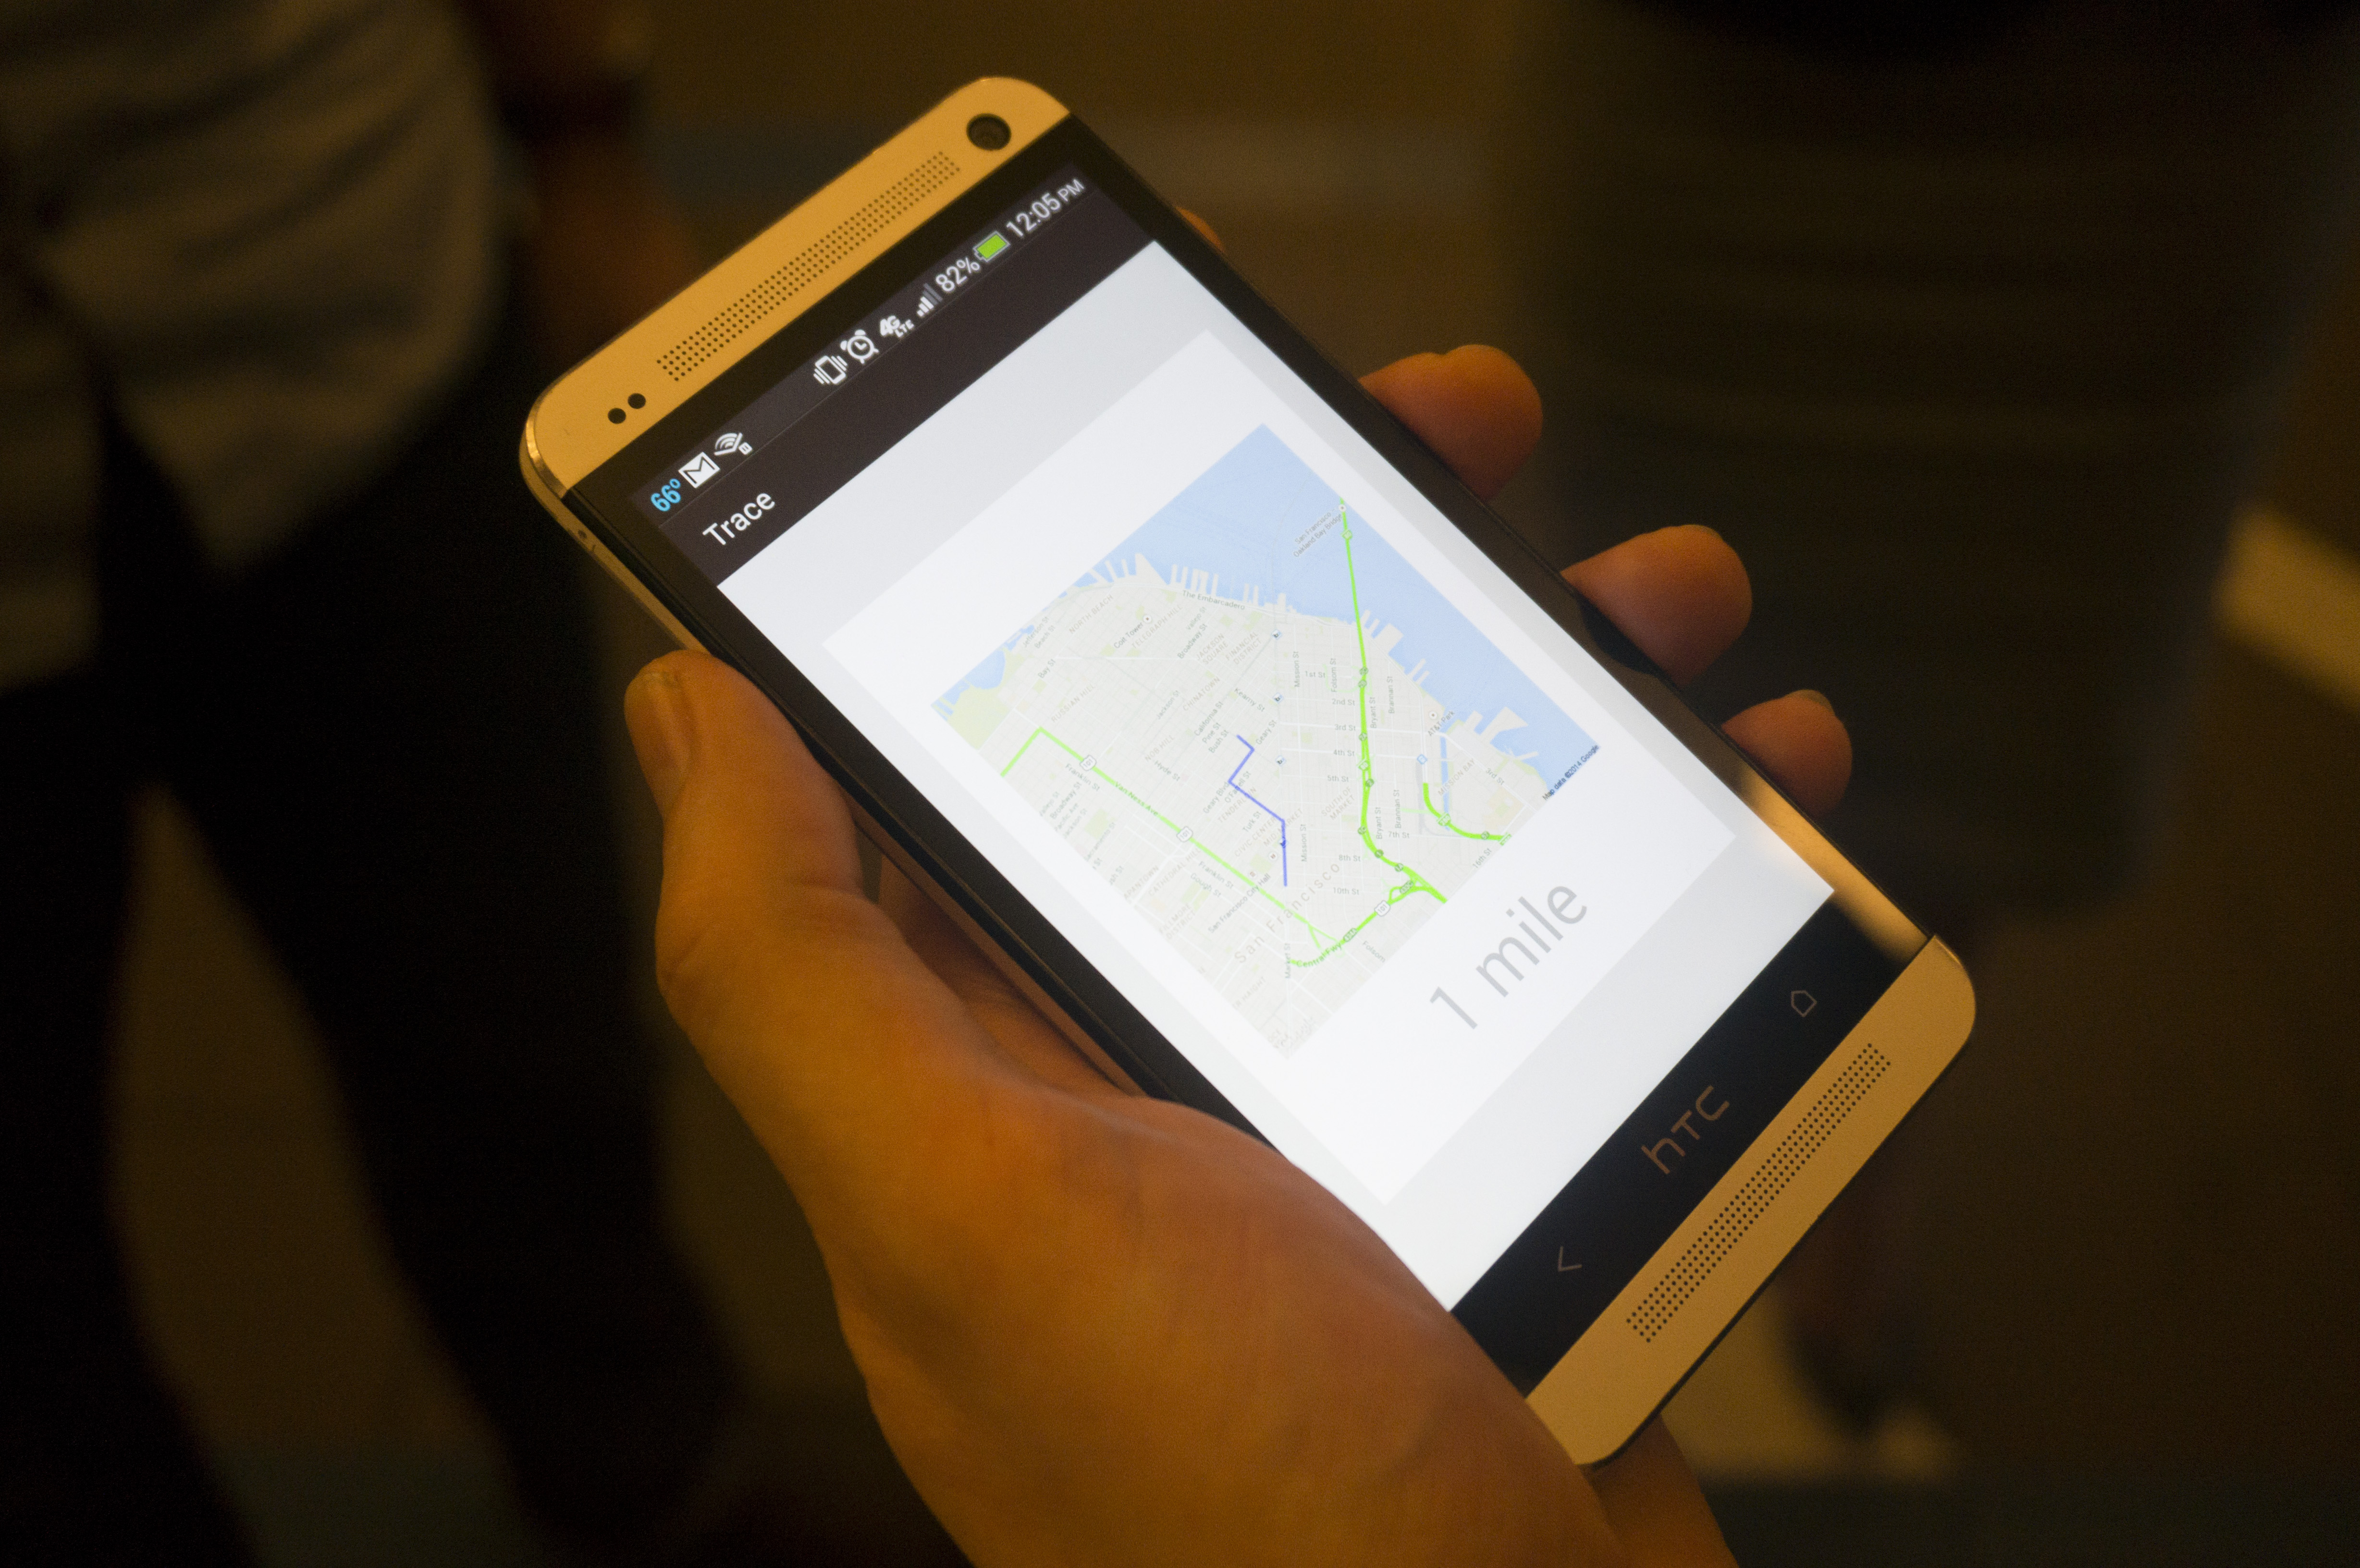 Sick of tracking mileage on business trips? Concur's new app